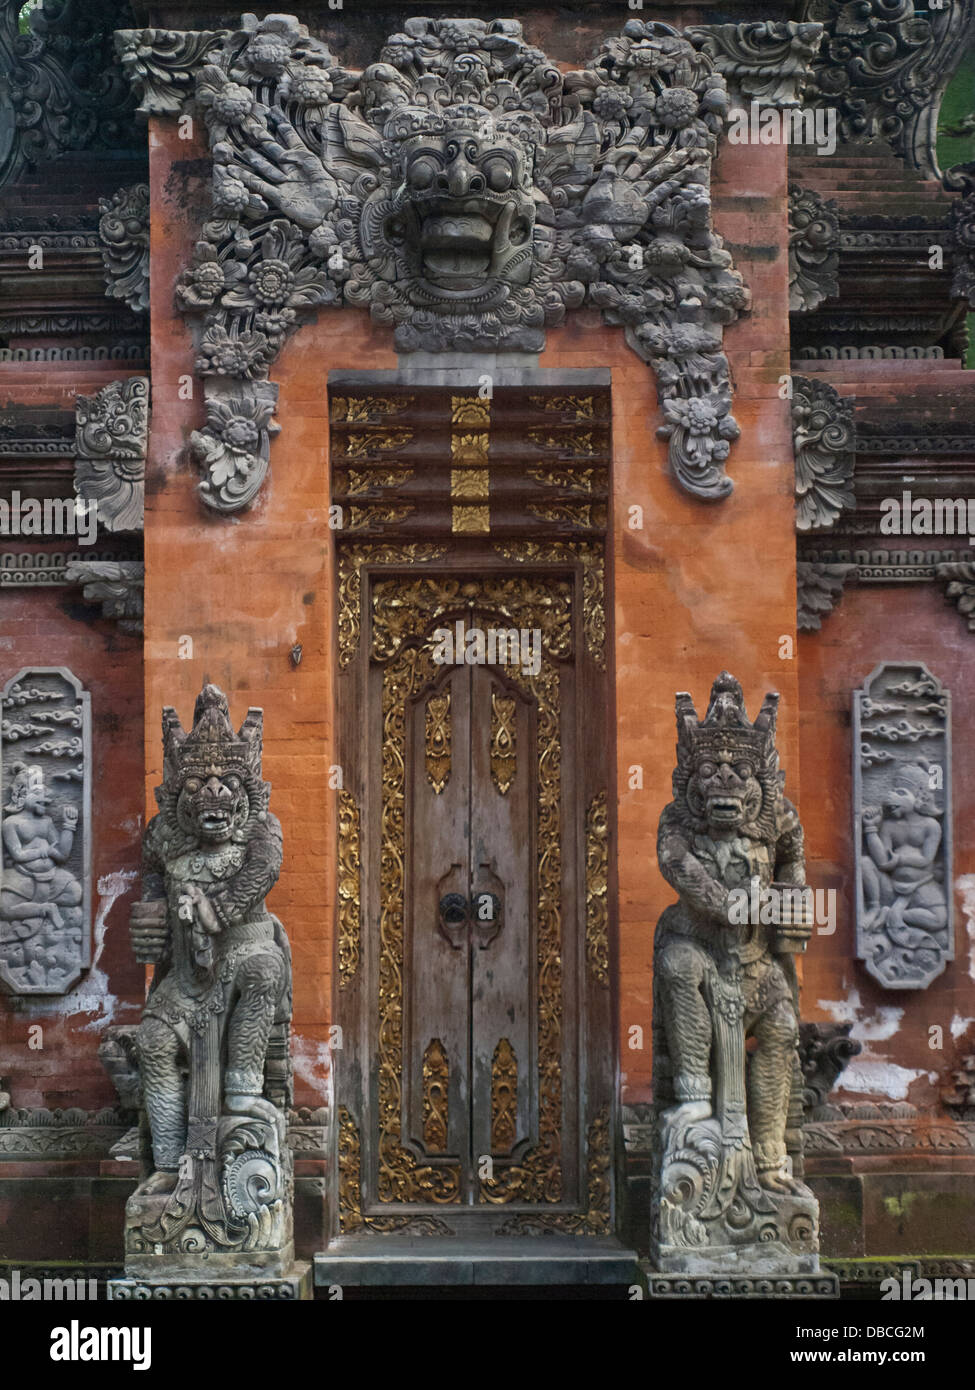 Bali temple door with traditional stone carvings stock photo